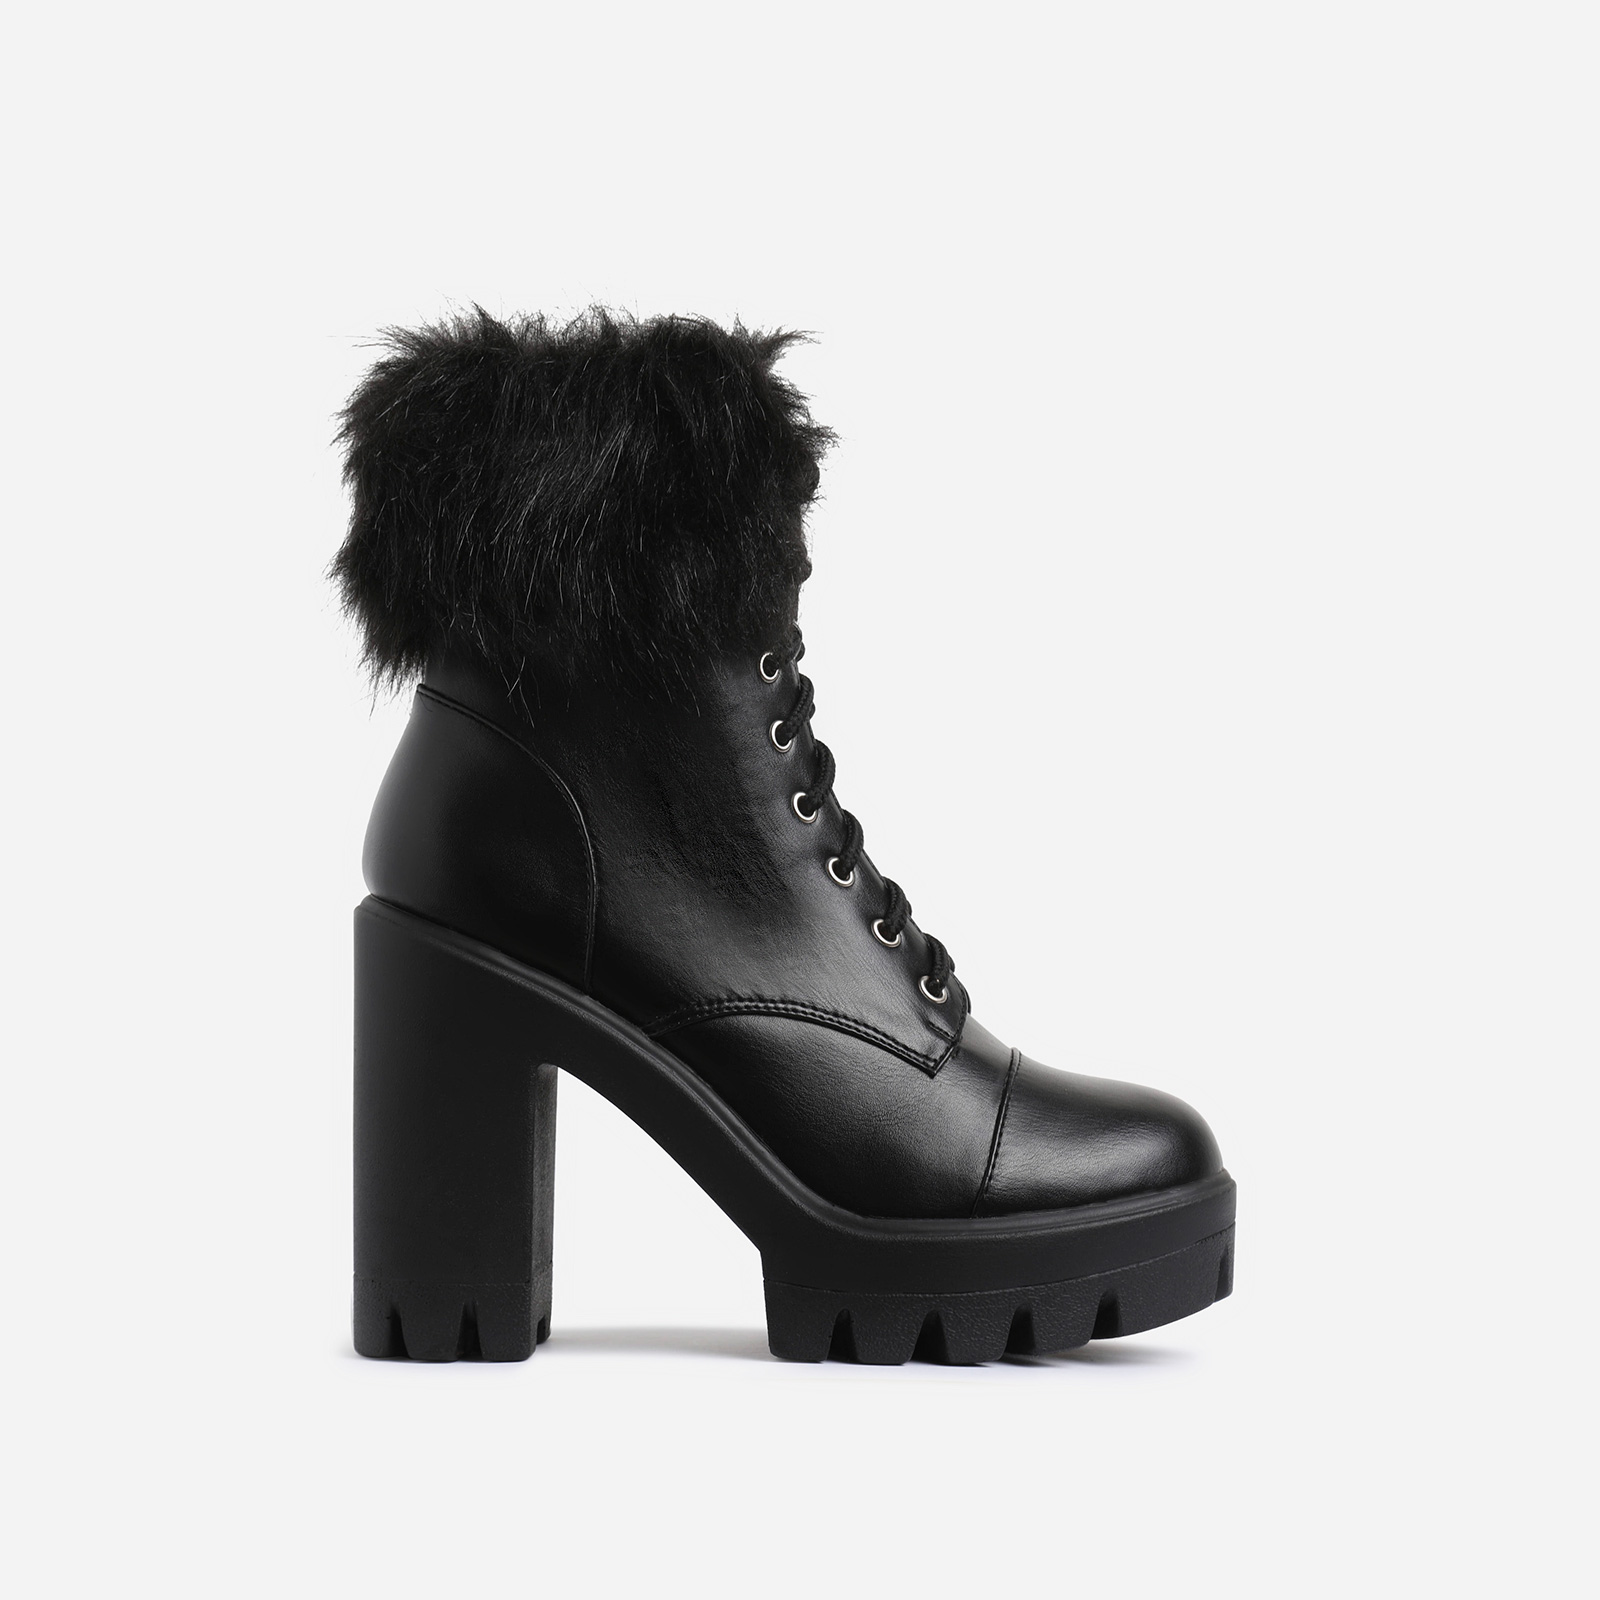 Toasty Lace Up Fluffy Block Heel Ankle Biker Boot In Black Faux Leather